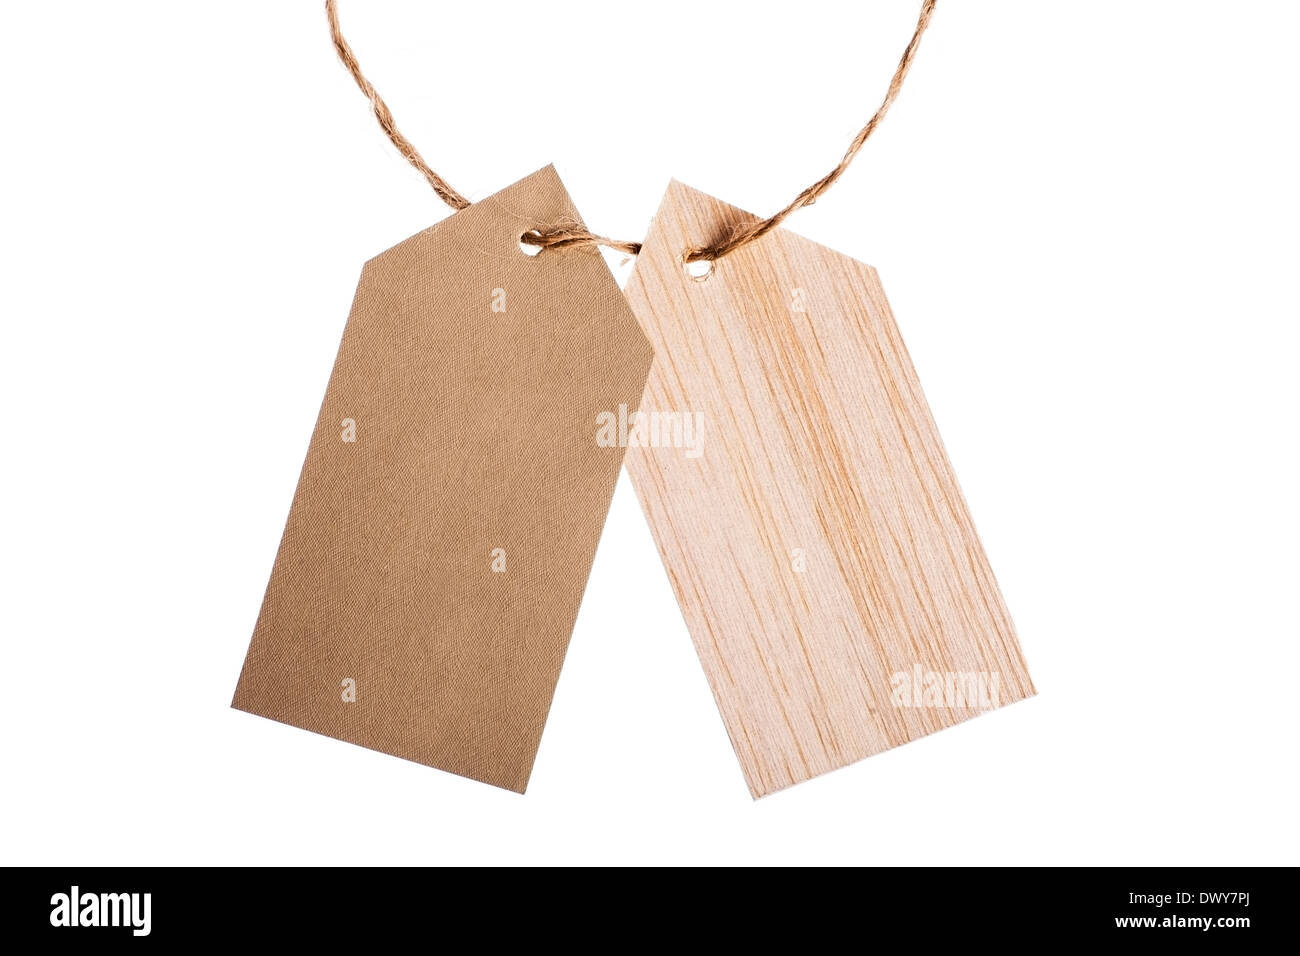 Color shot of two tags with a rope, isolated on white - Stock Image